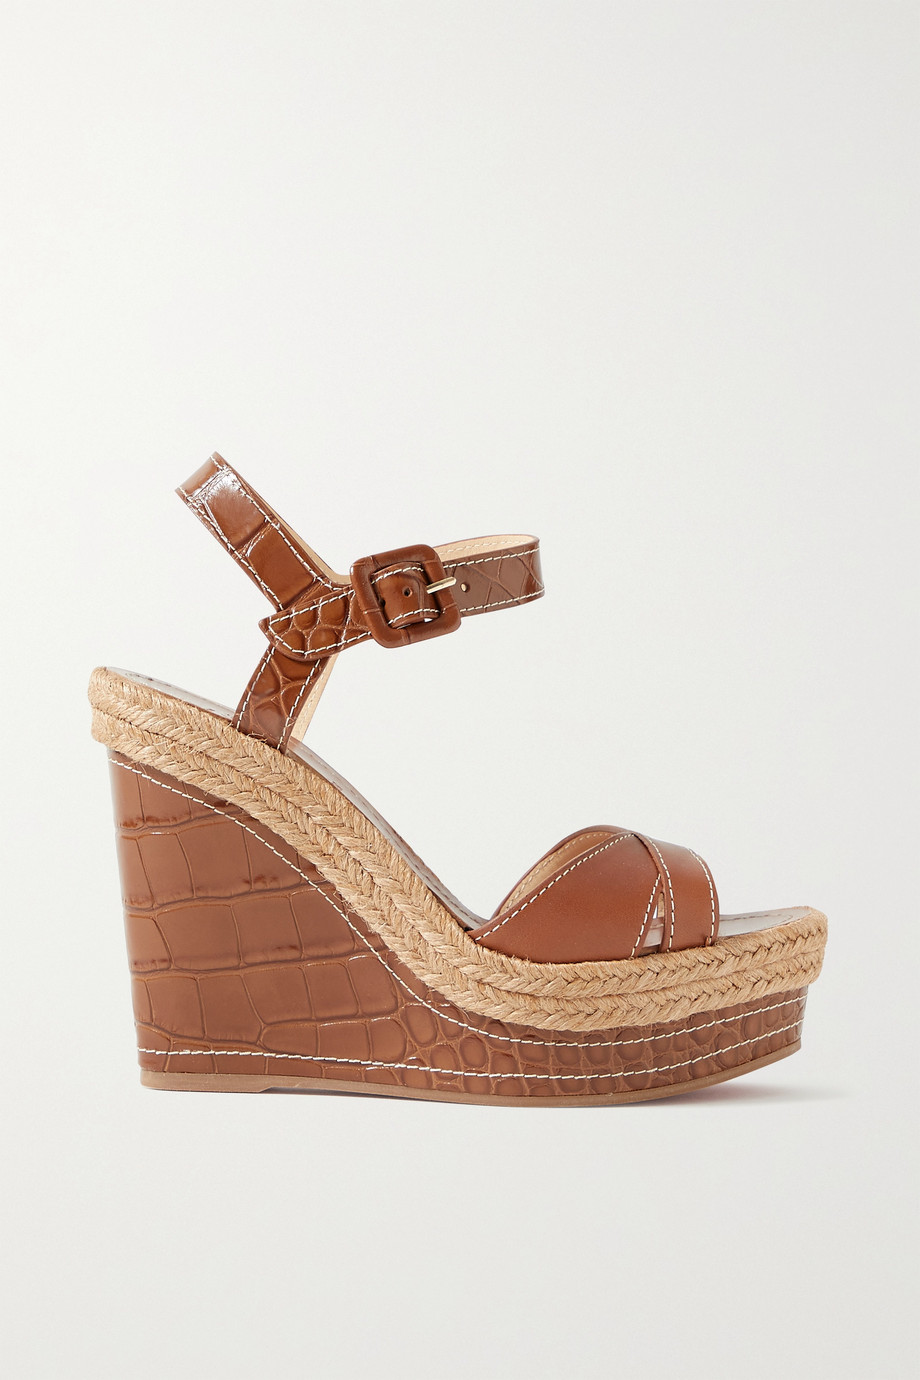 Christian Louboutin Almerio 120 smooth and croc-effect leather wedge sandals